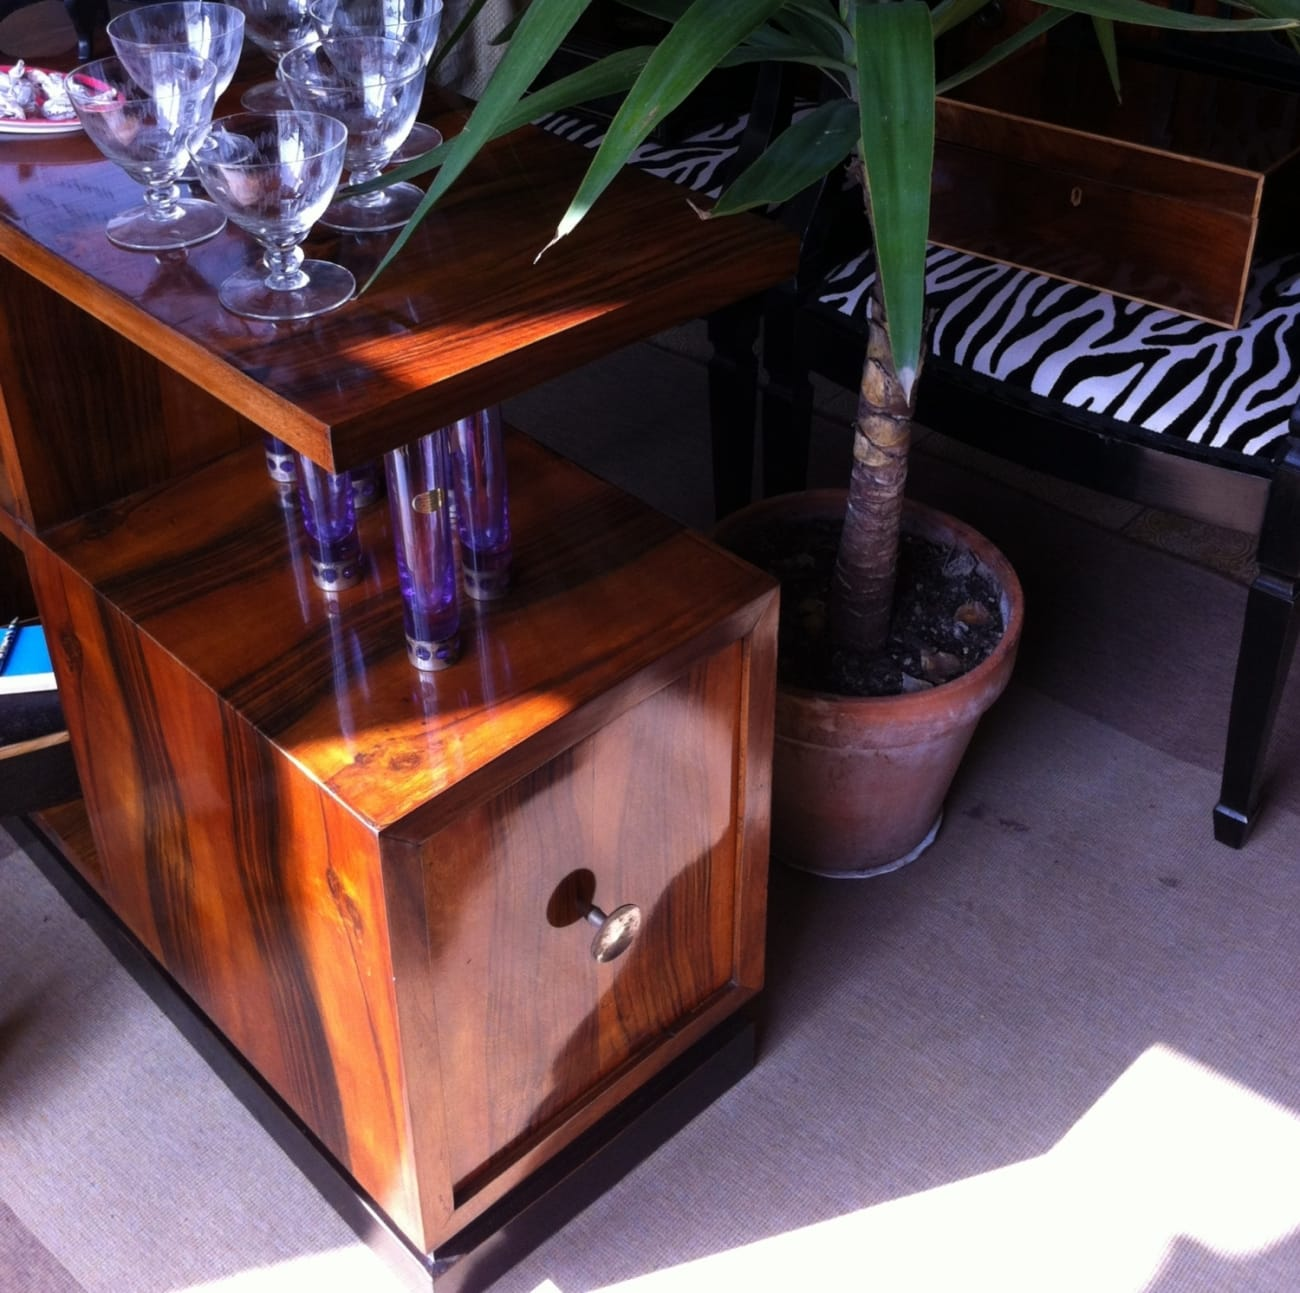 Deco cabinet Jane Harman storage and furniture restoration in Florence